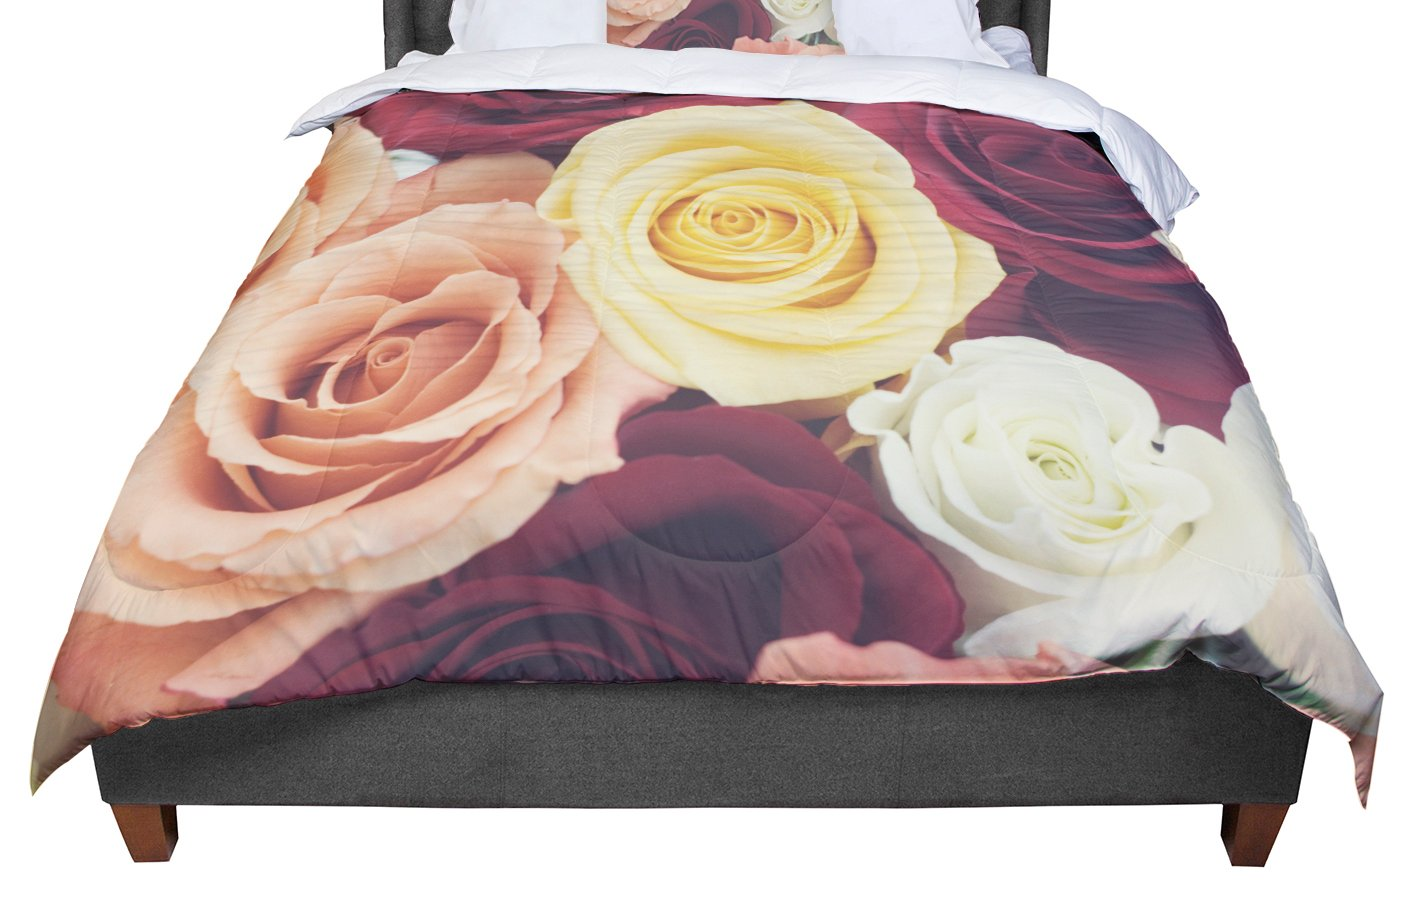 KESS InHouse Libertad Leal You Are A Star King Cal King Comforter 104 X 88